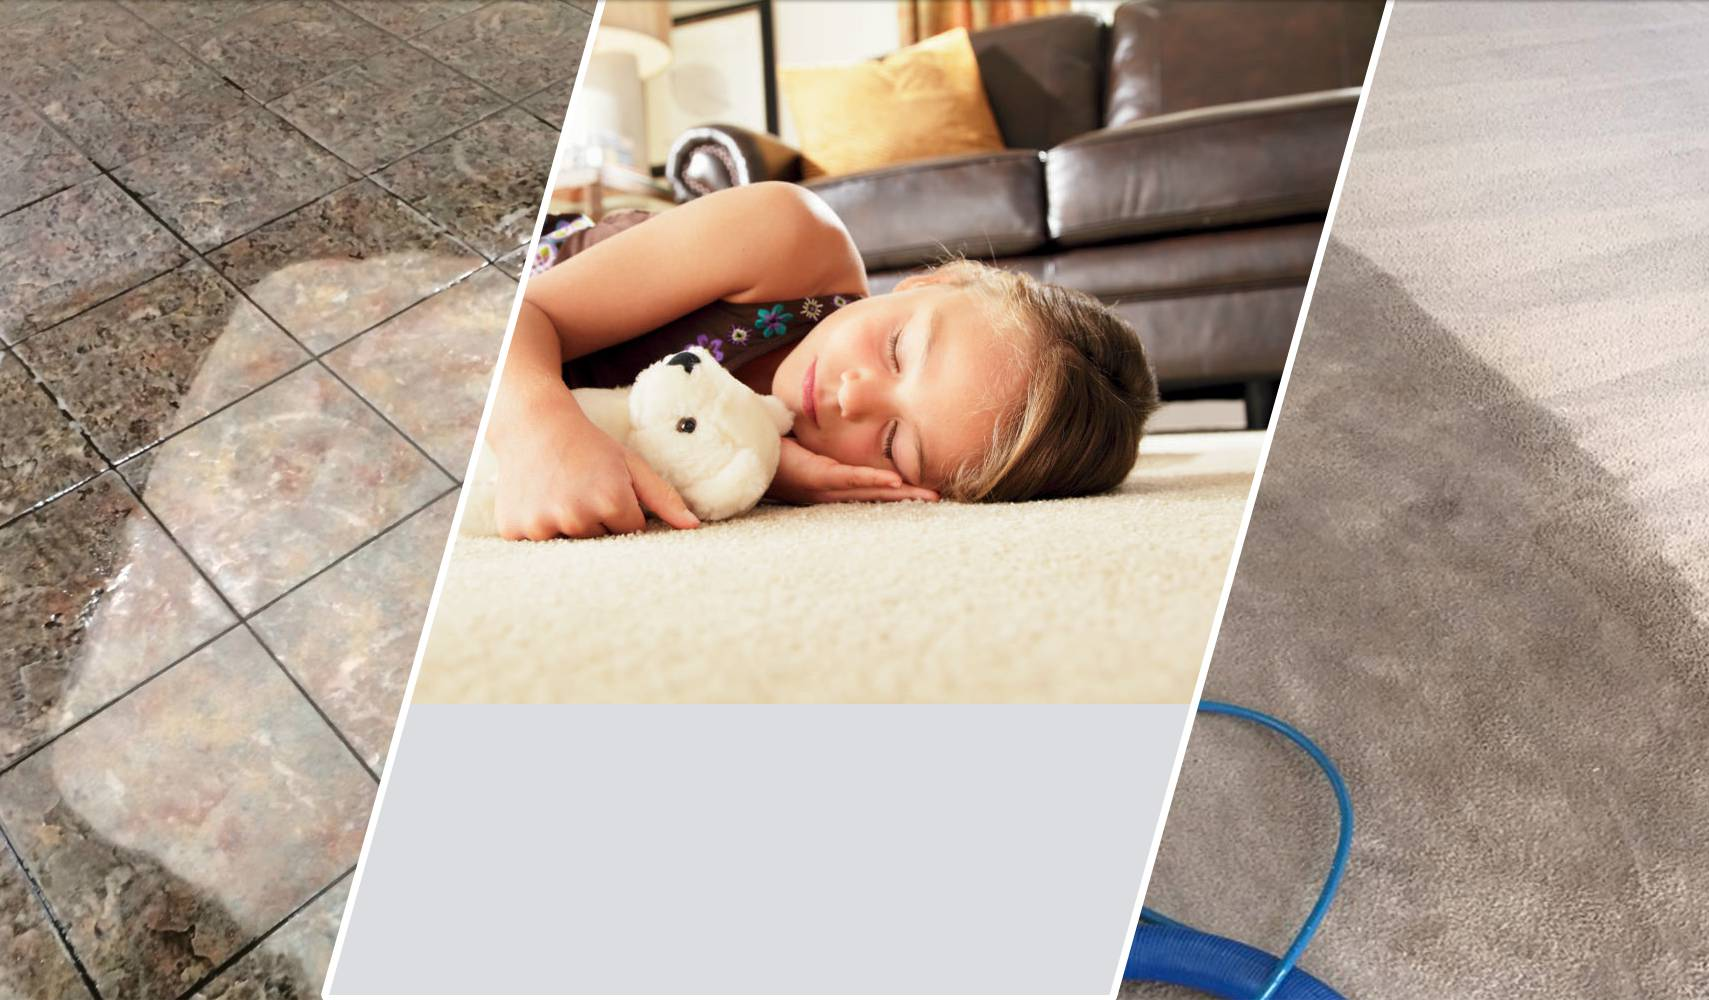 Carpet Cleaning Peoria AZ | Carpet Cleaning Surprise AZ